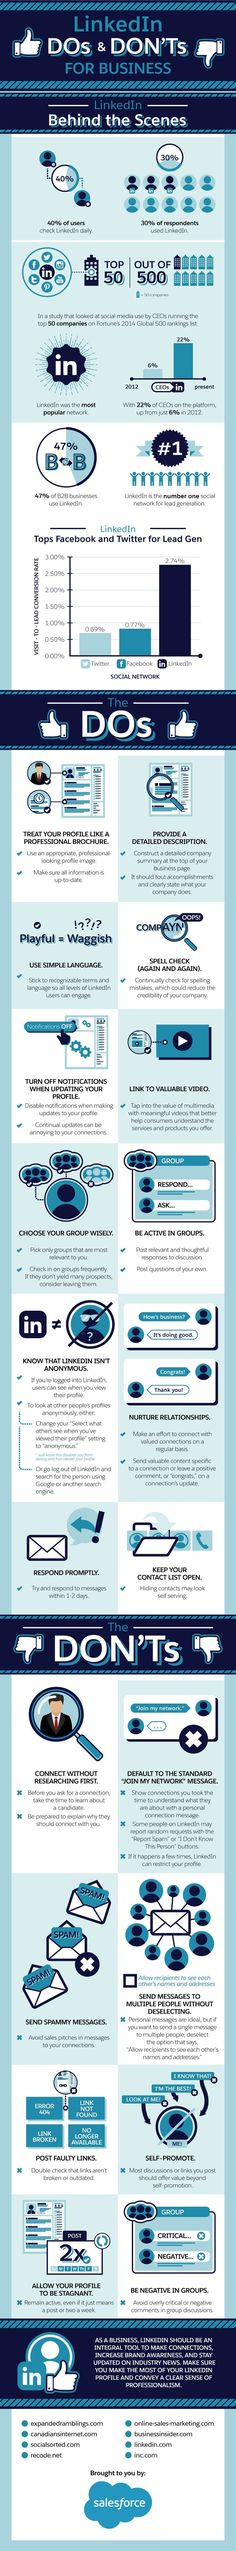 LinkedIn Dos and Don'ts for Business - infographic